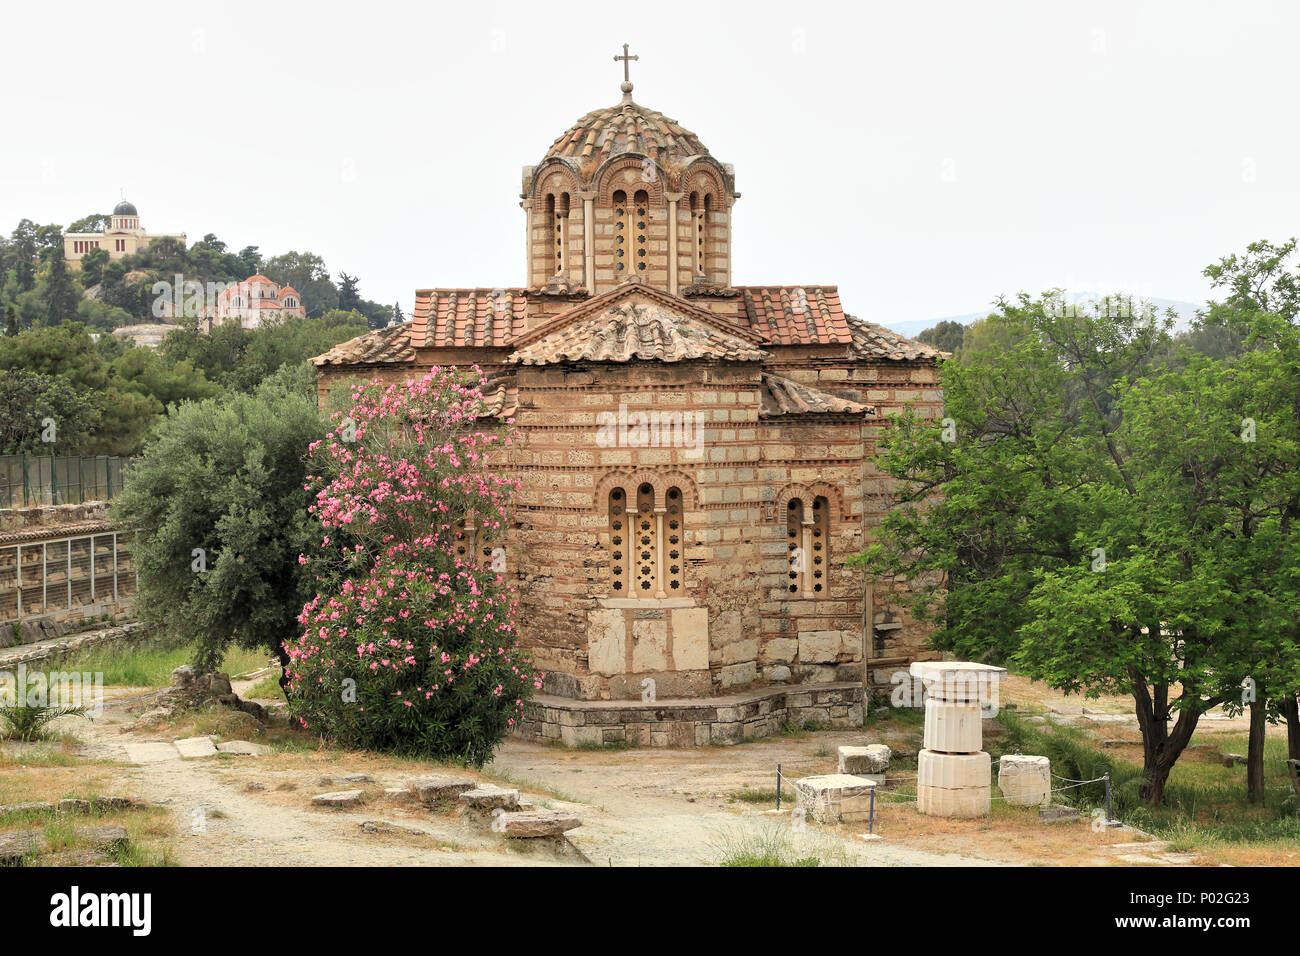 From Athens to the Islands: A Greek Easter Journey